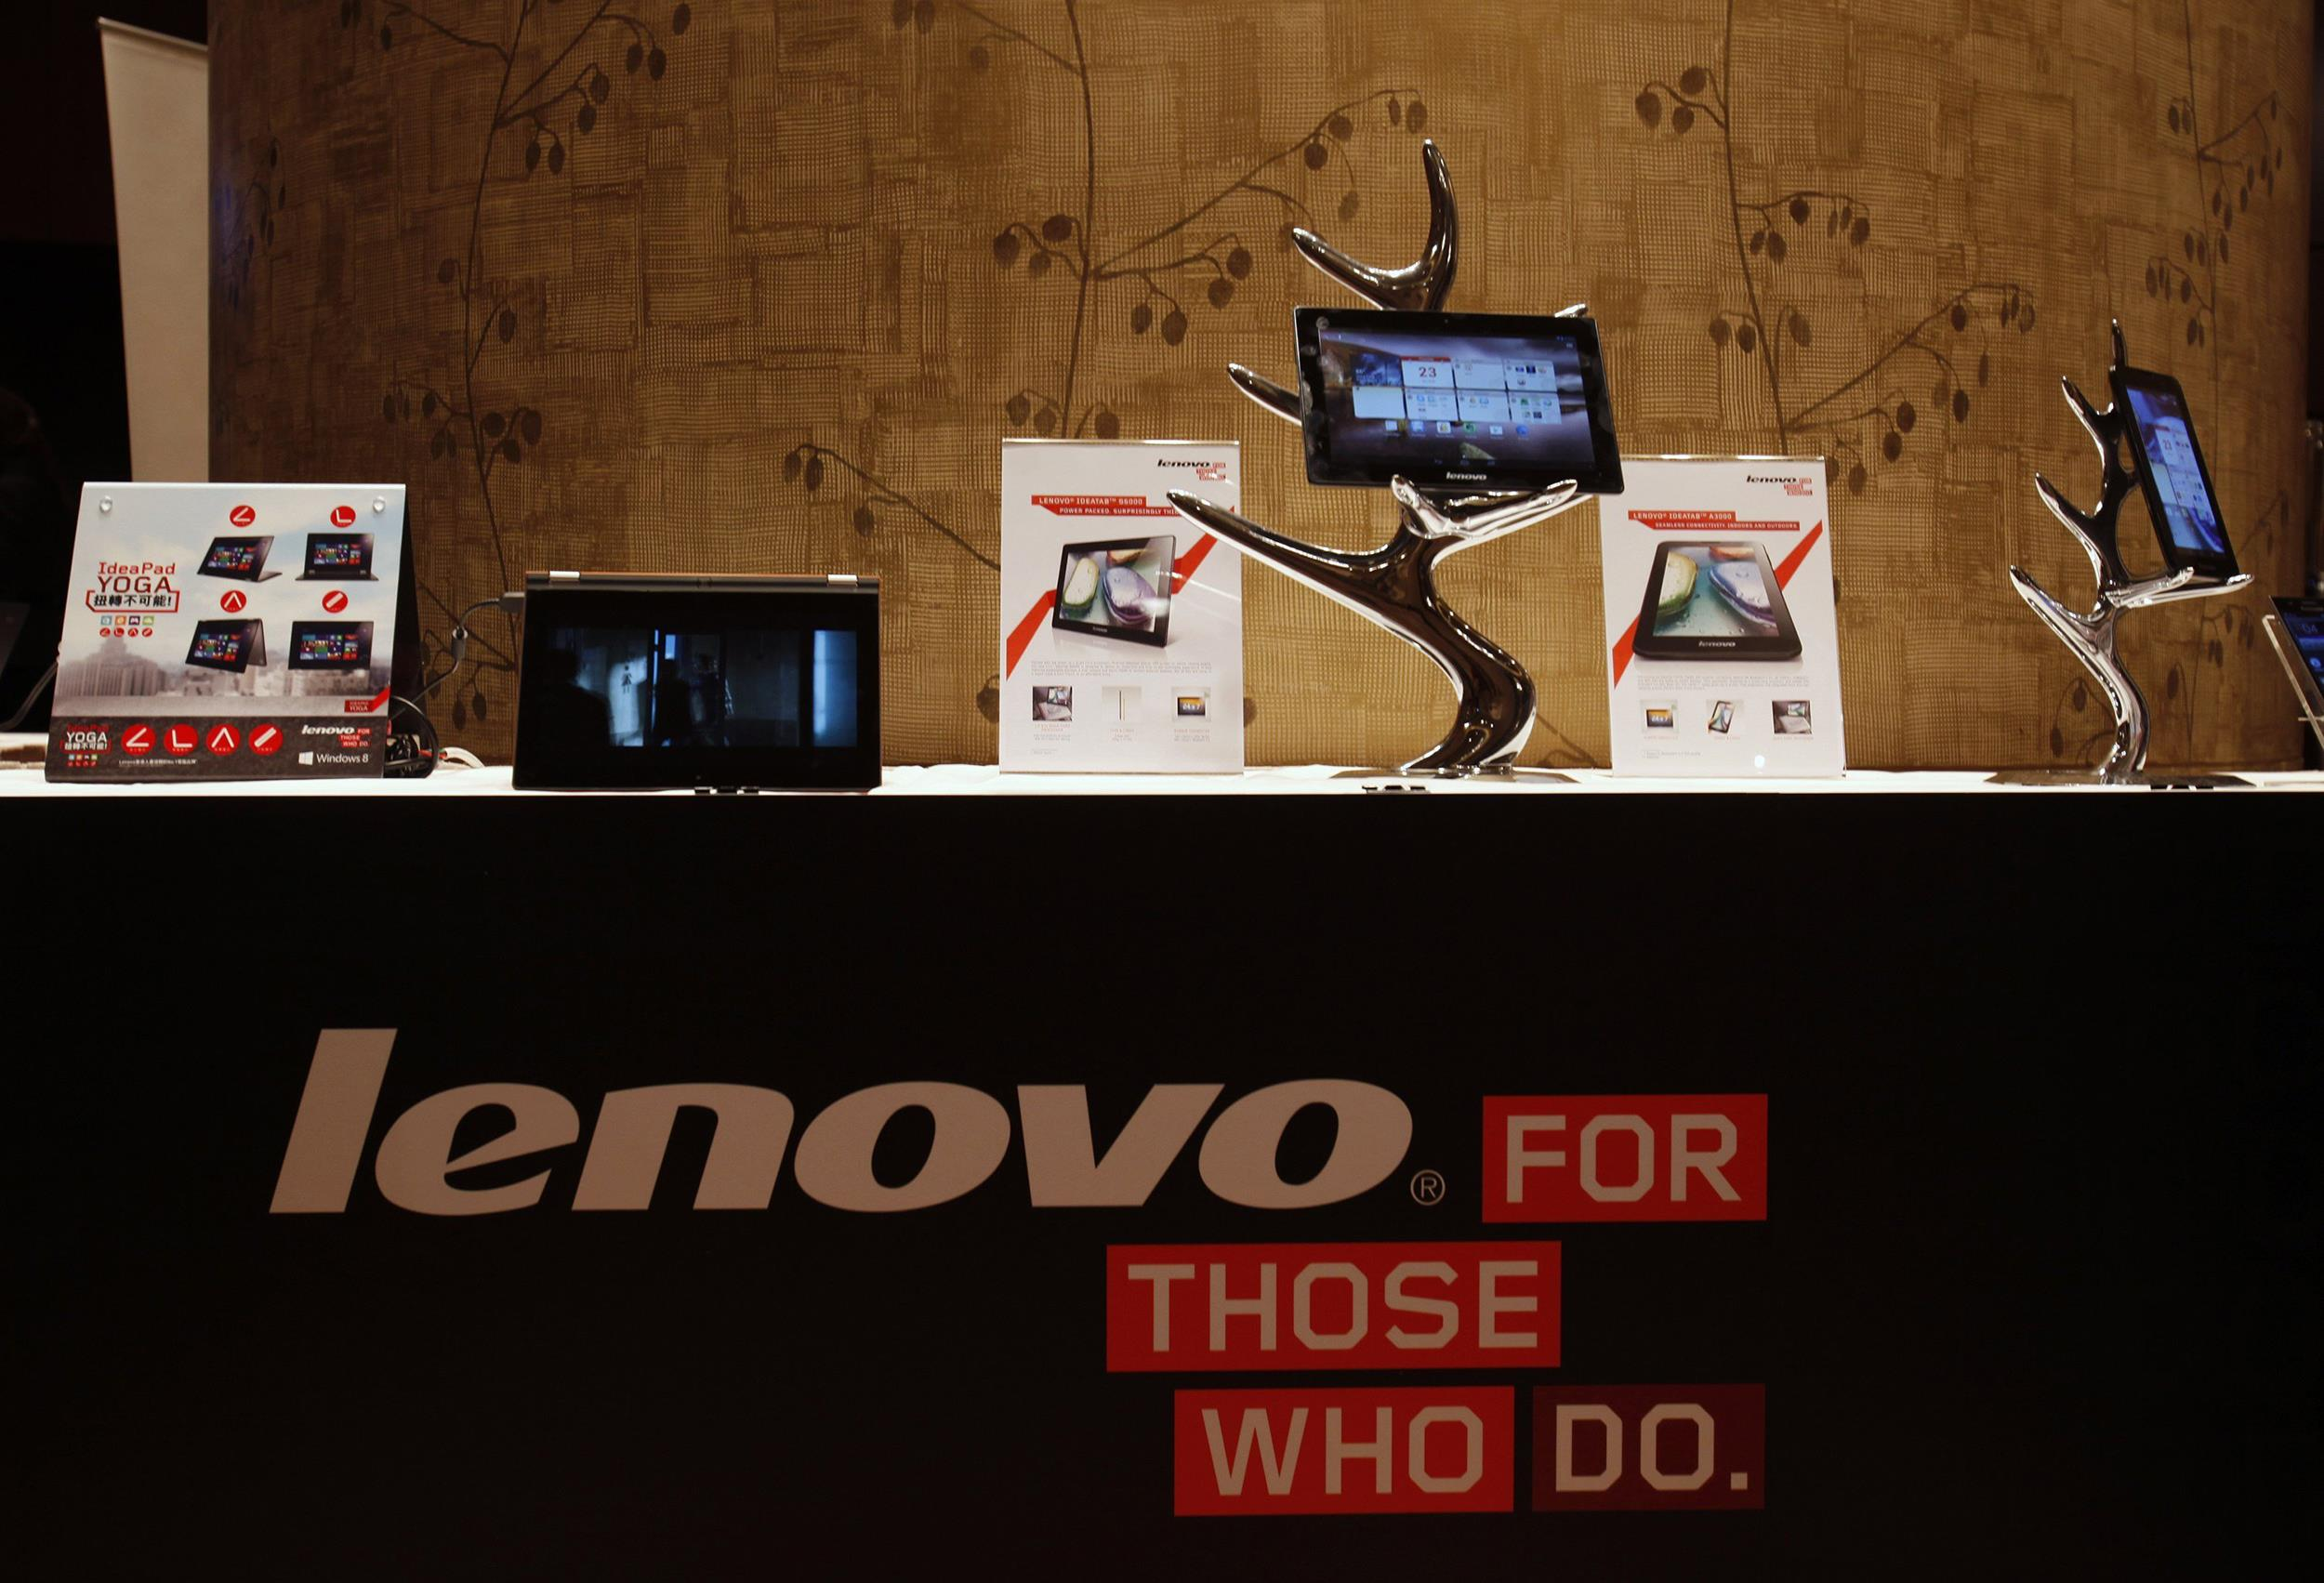 Lenovo Made Laptops Vulnerable to Hacking: Experts